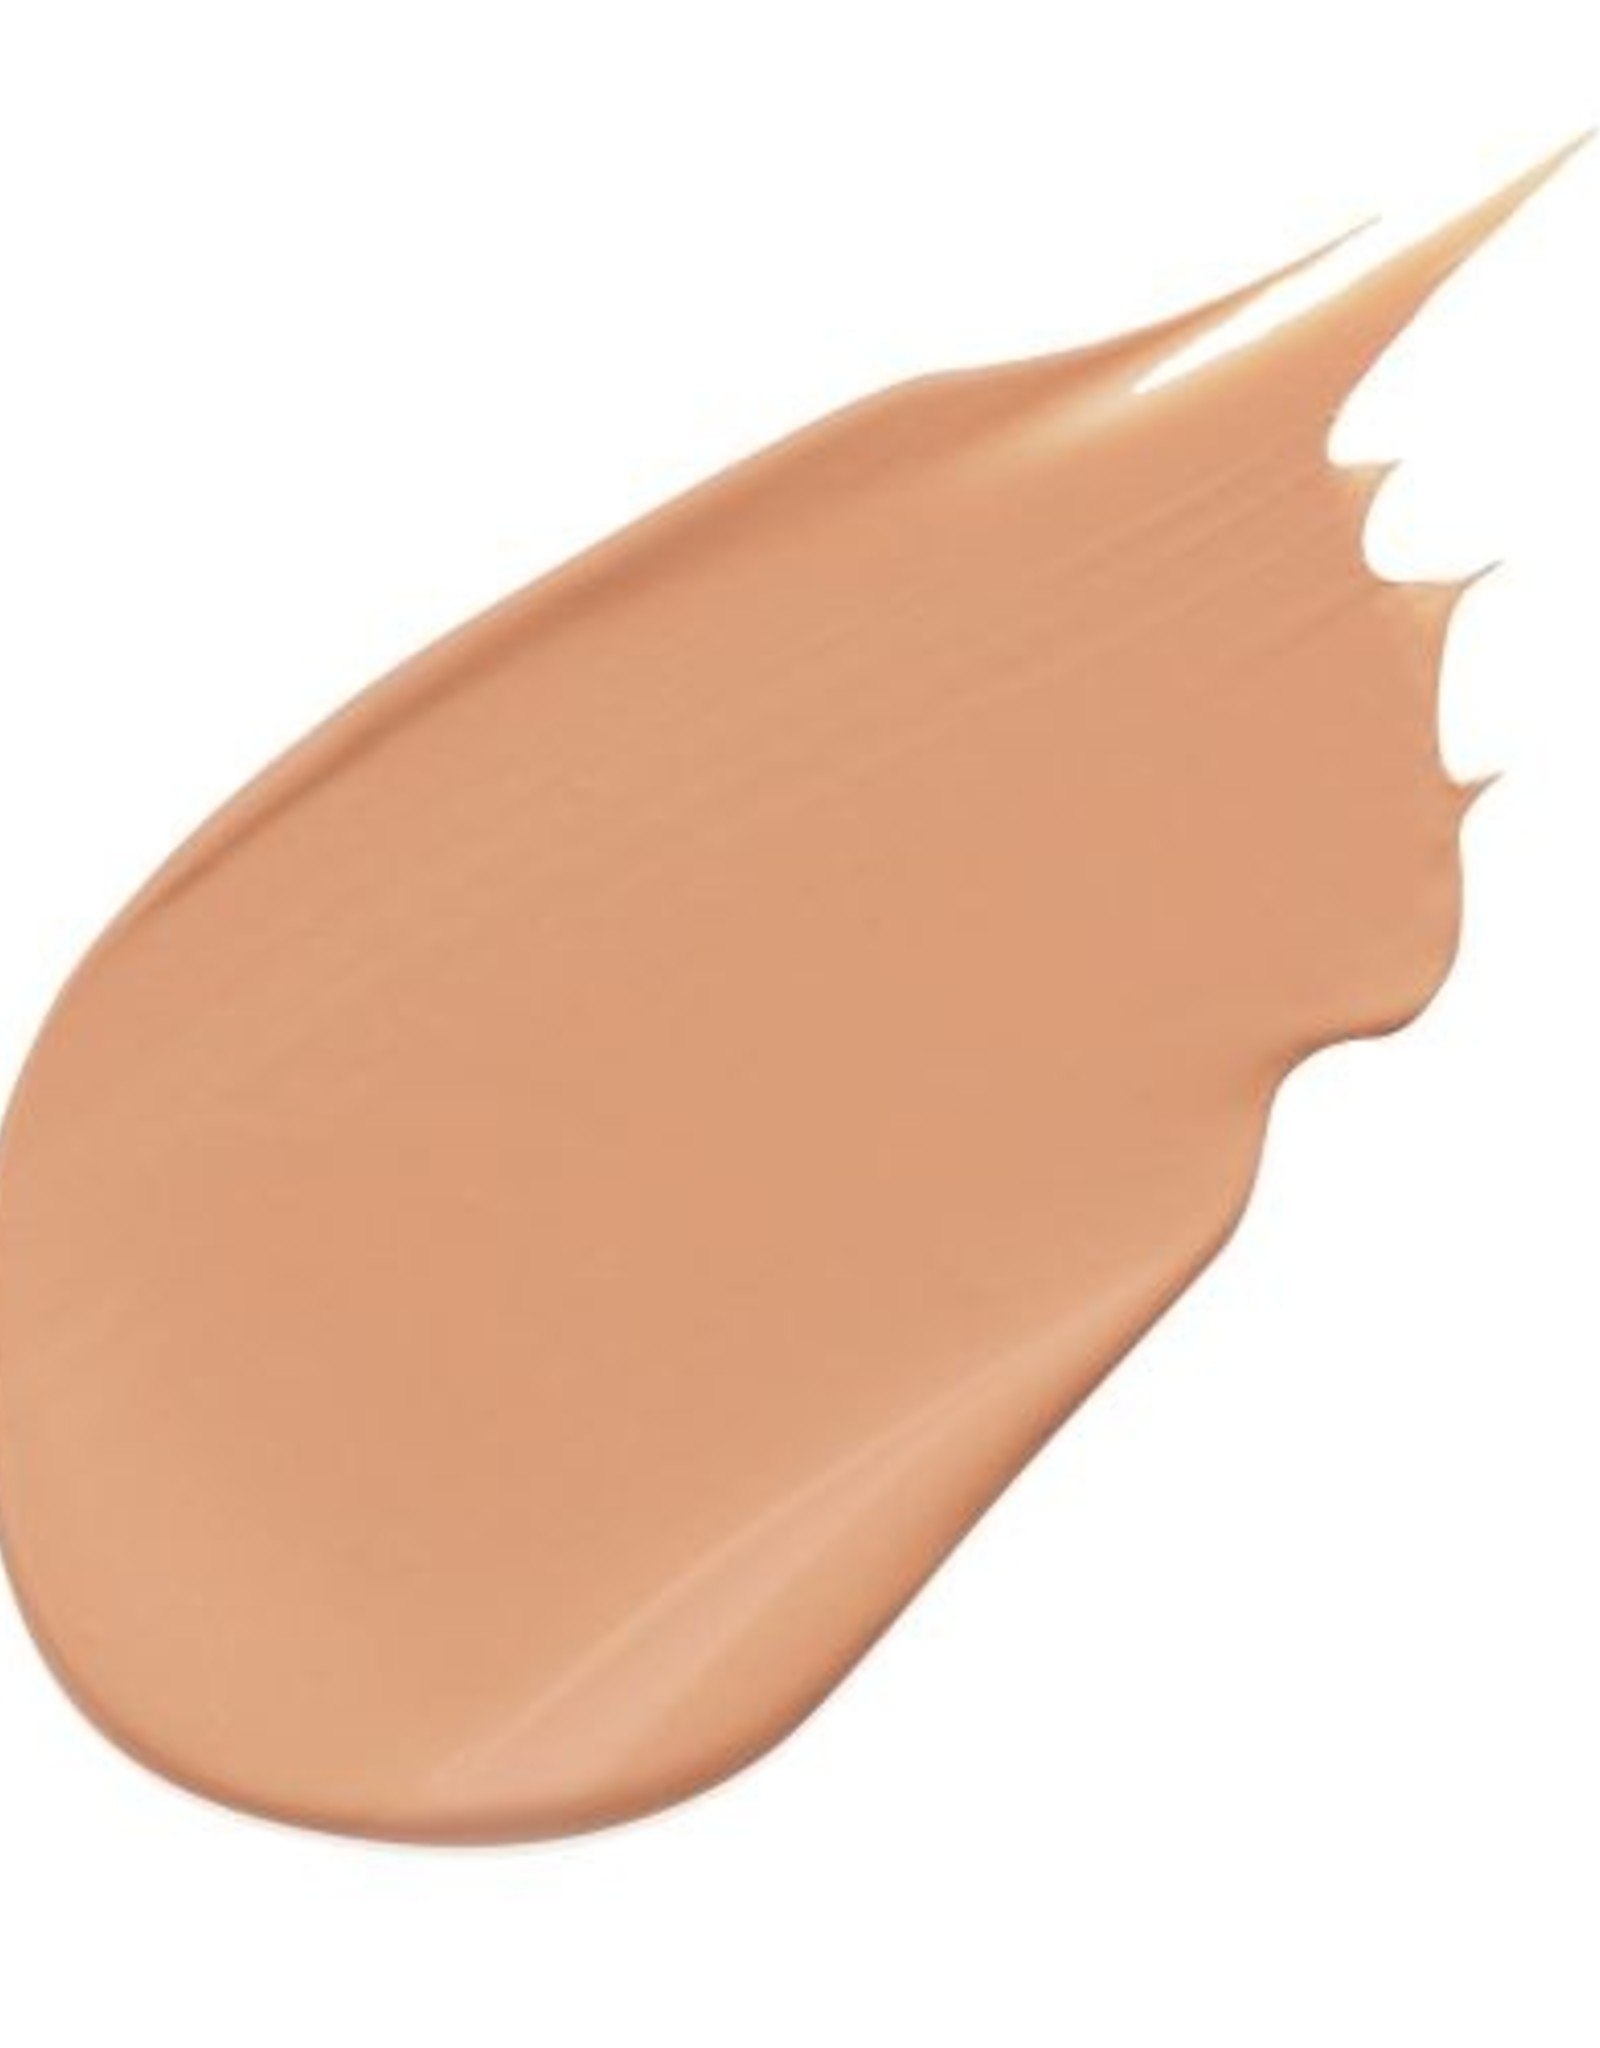 Jane Iredale Glow Time Full Coverage BB Cream